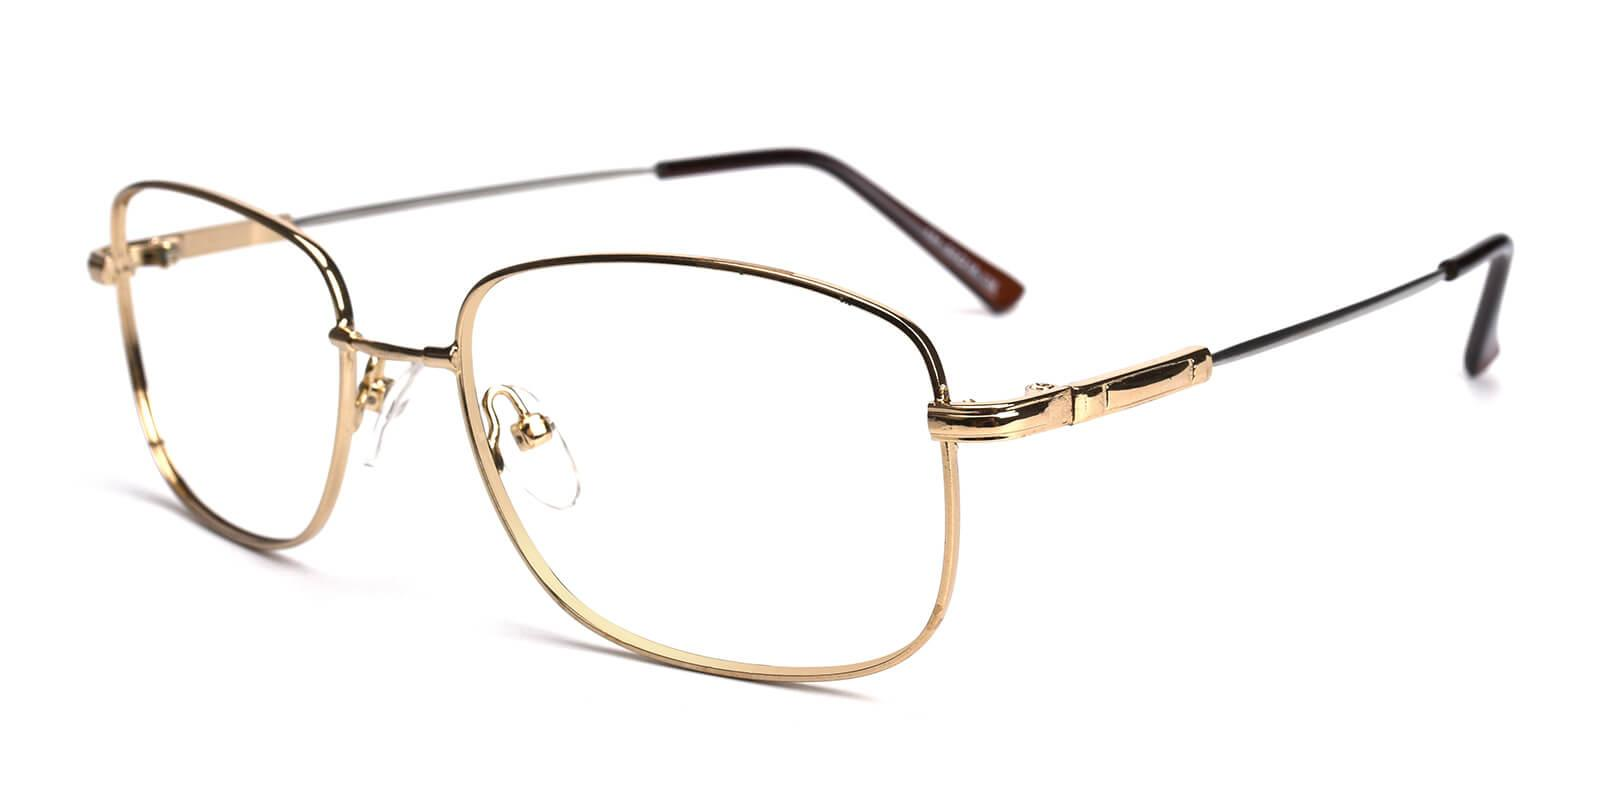 Twist-Gold-Square-Metal-Eyeglasses-additional1